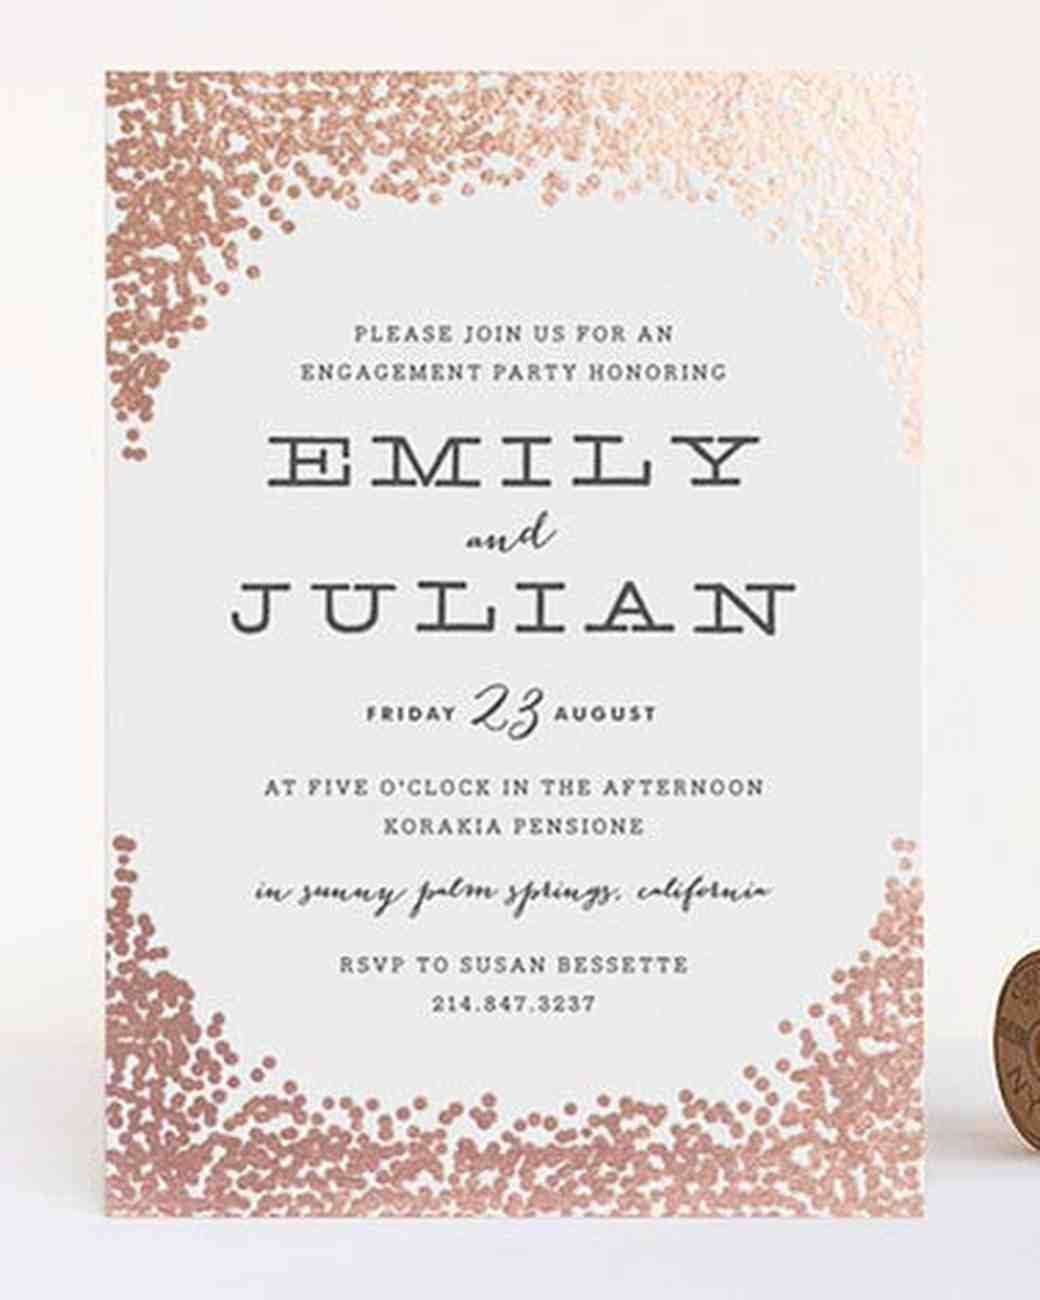 15 engagement party invitations martha stewart weddings - Engagement Party Invite